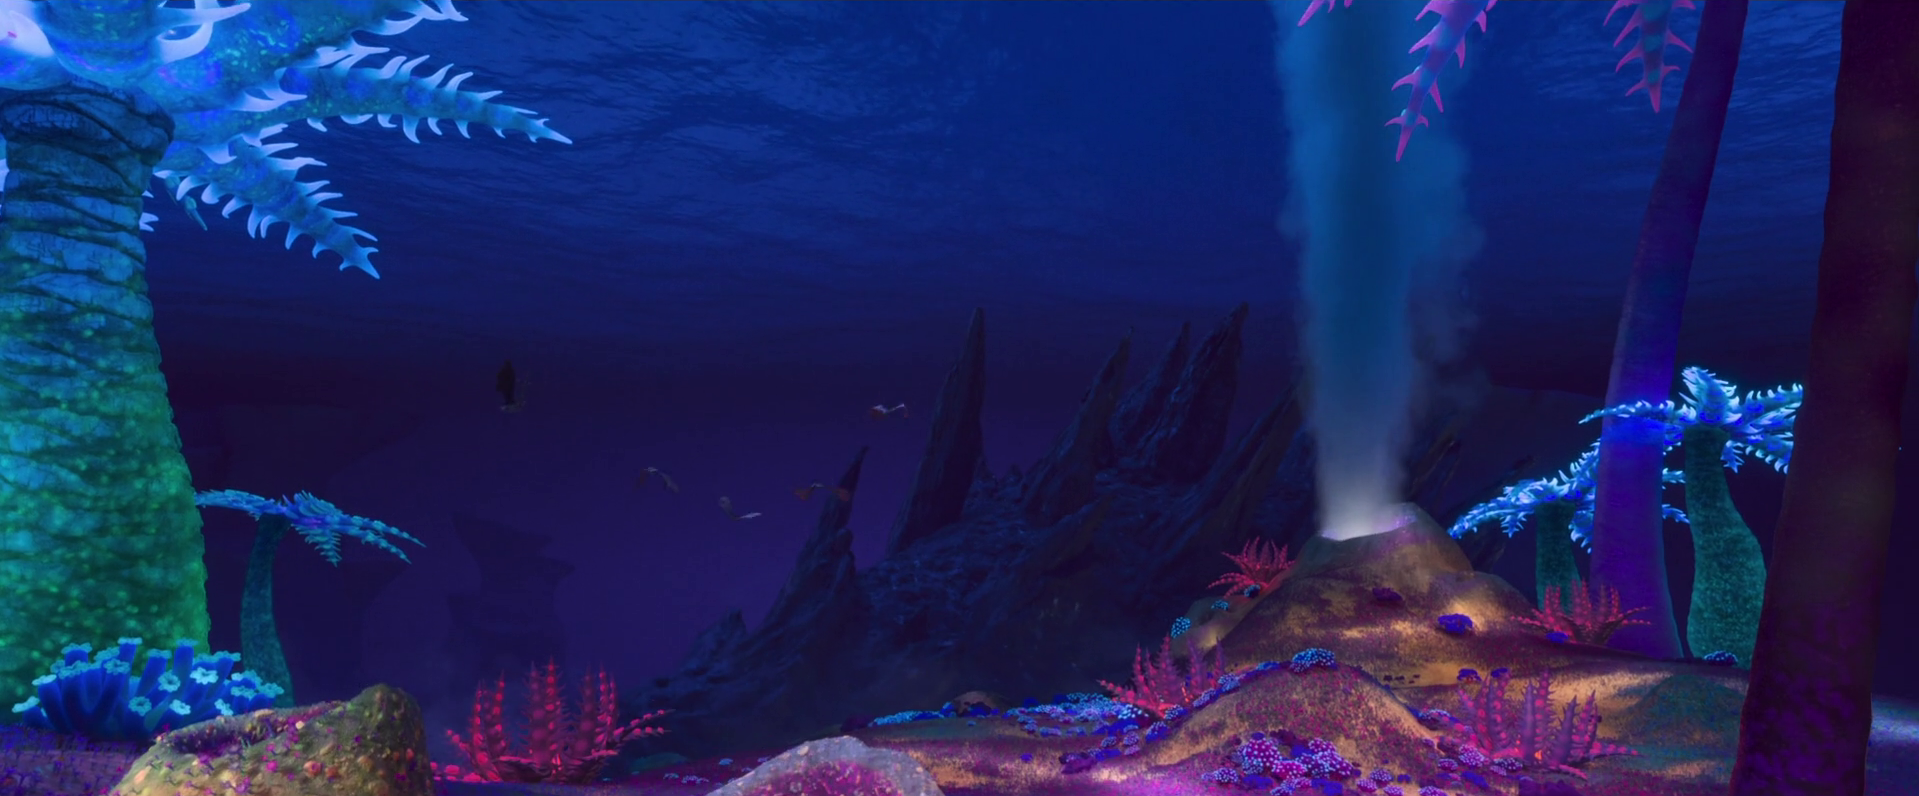 The Realm of Monsters (Moana - 2016).png